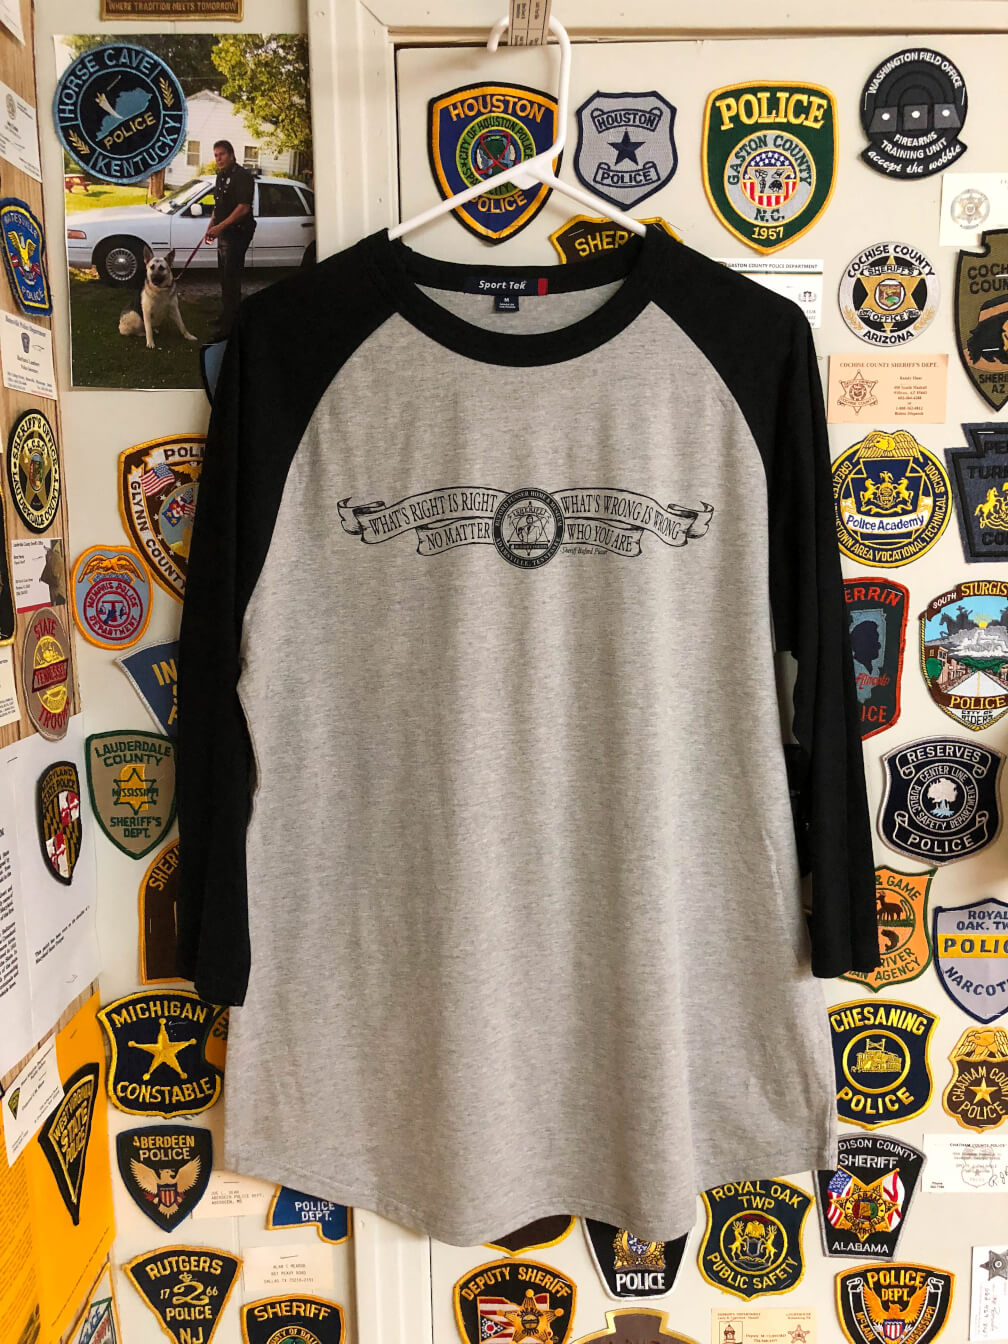 17e1e5fdb200 What's Right is Right - Baseball T-Shirt - Sheriff Buford Pusser Museum